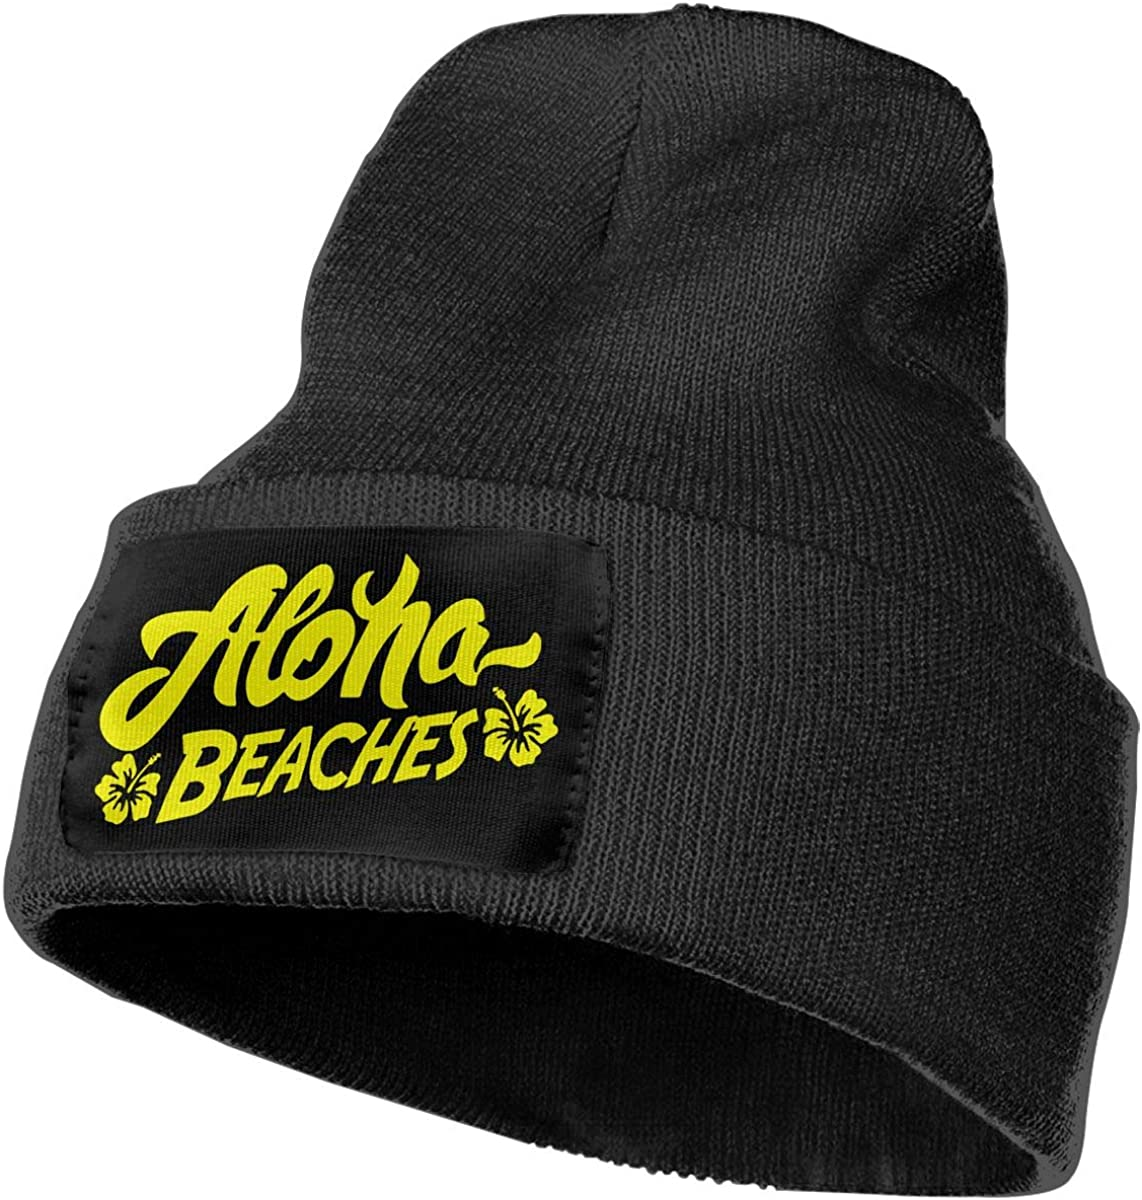 Unisex Aloha Beaches Outdoor Fashion Knit Beanies Hat Soft Winter Knit Caps